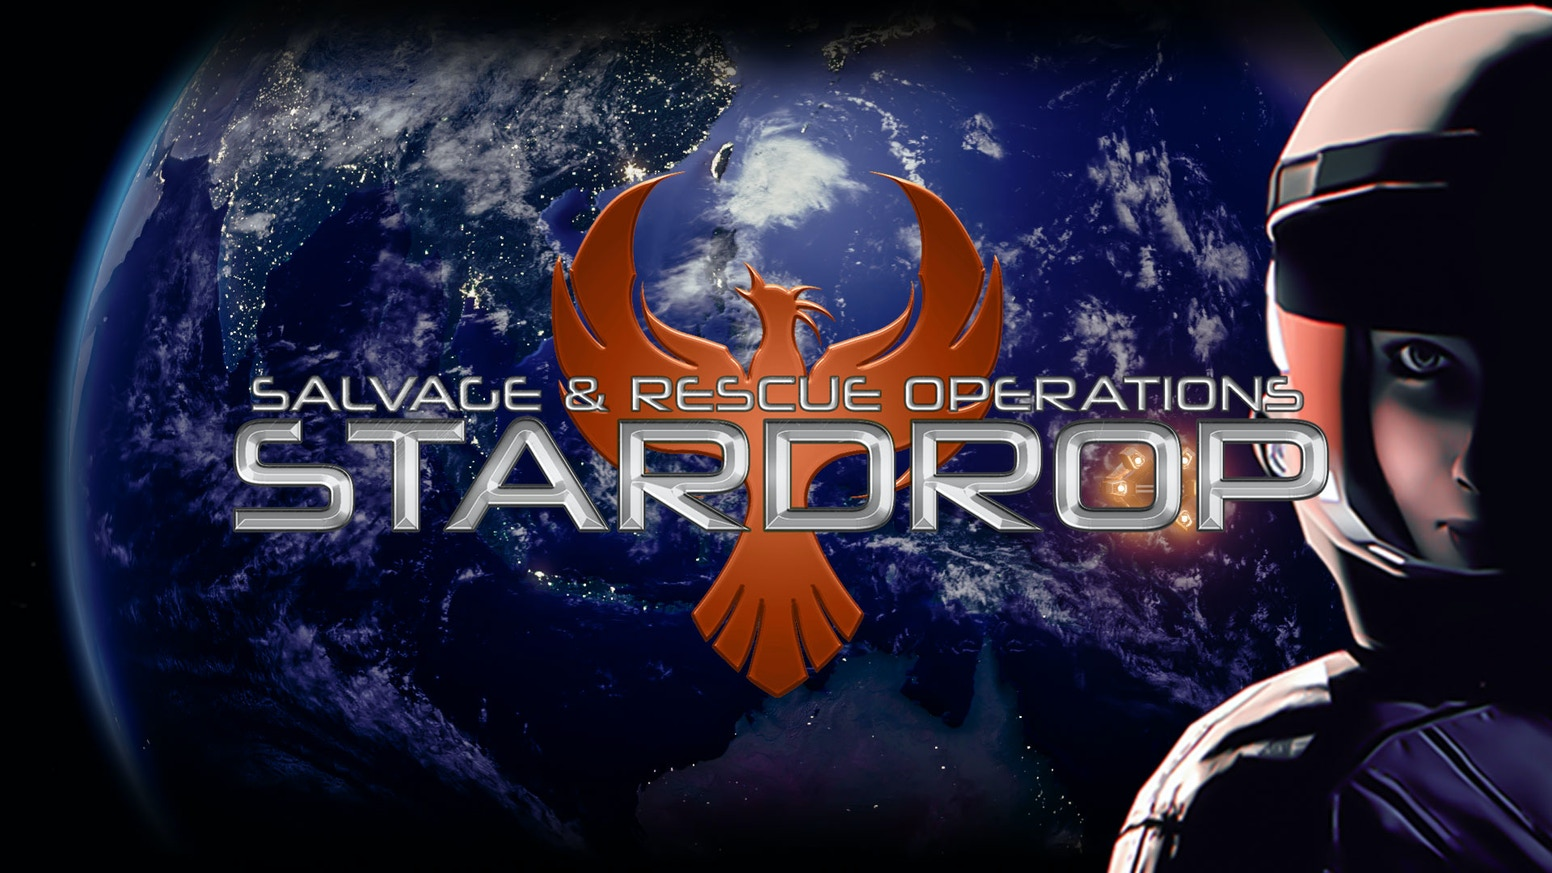 STARDROP is a story-driven Sci-Fi adventure and exploration game.